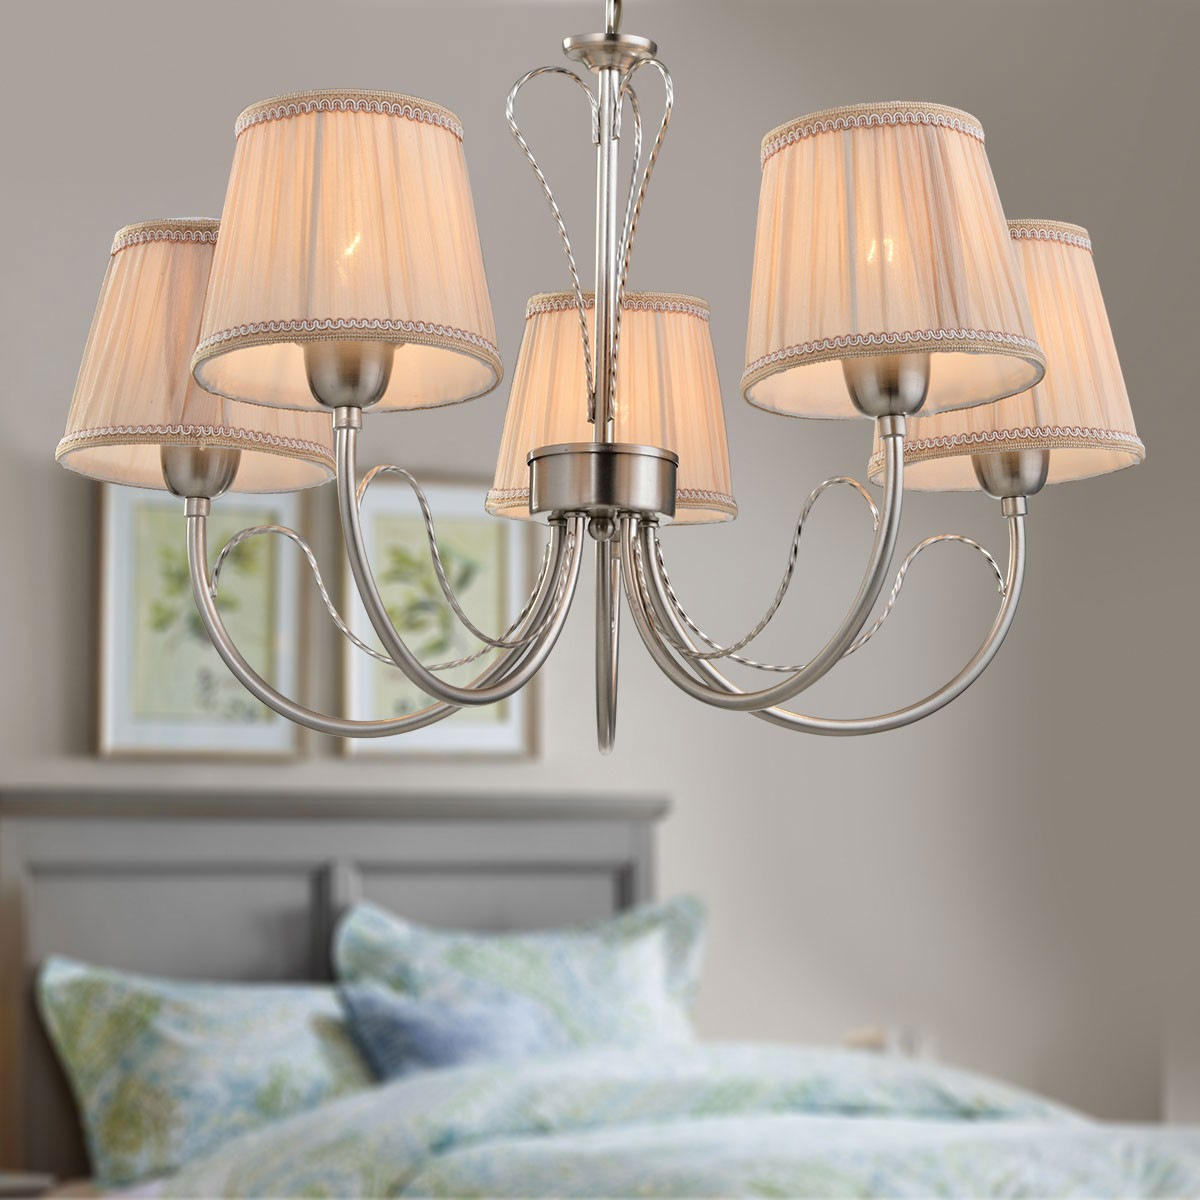 5 Light Silver Iron Modern Chandelier With Fabric Shades Hkp31263